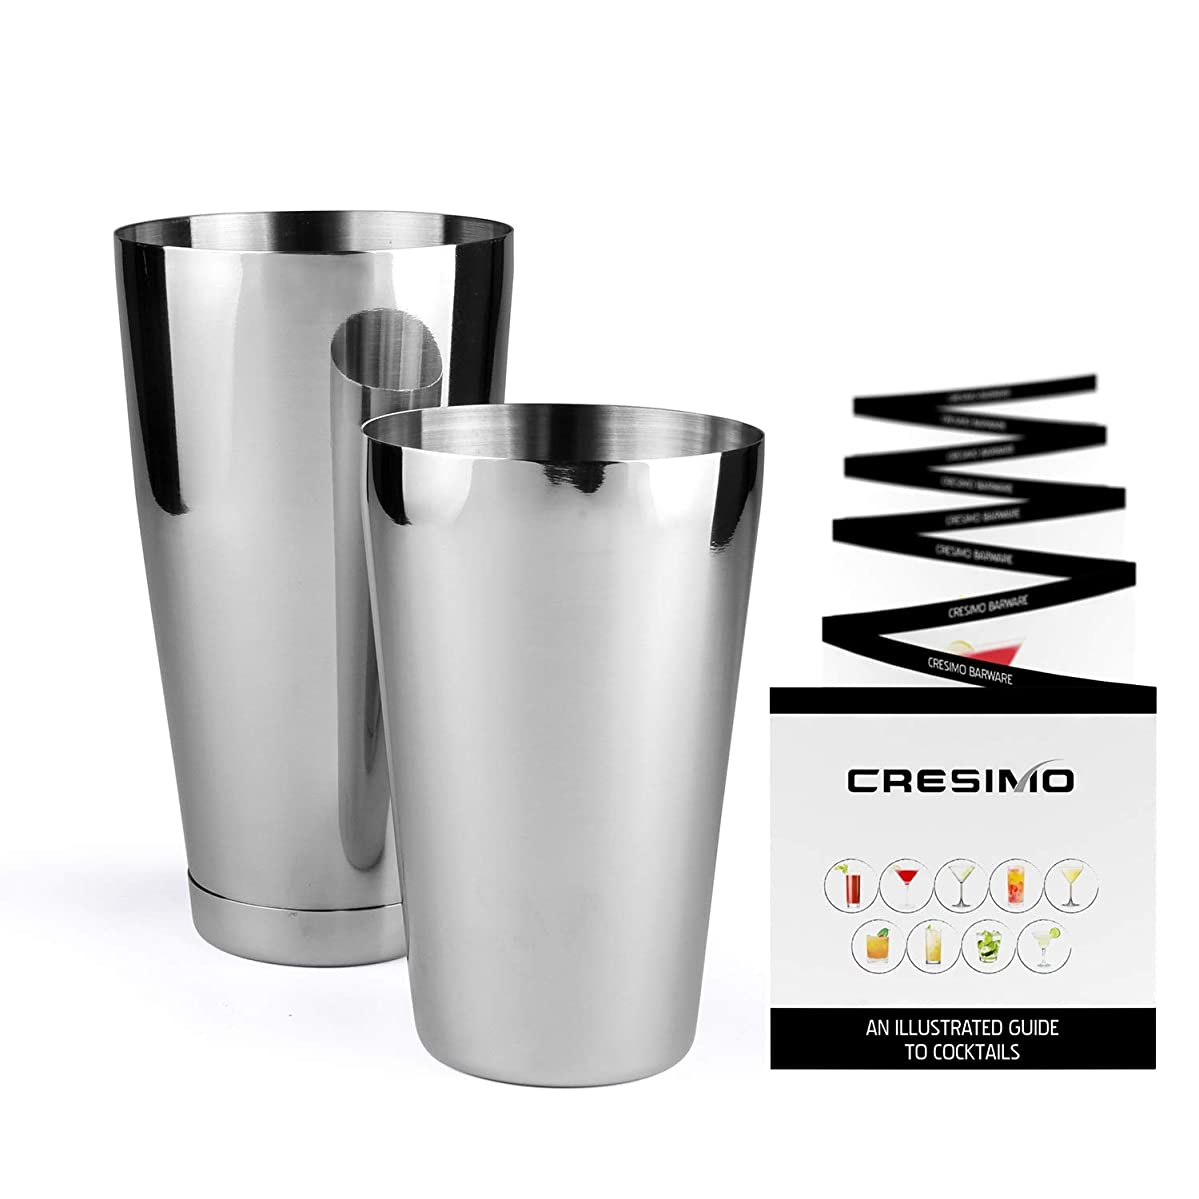 Boston Shaker Cocktail Making Set:18oz Unweighted & 28oz Weighted Professional Bartender Cocktail Shaker Set by Cresimo